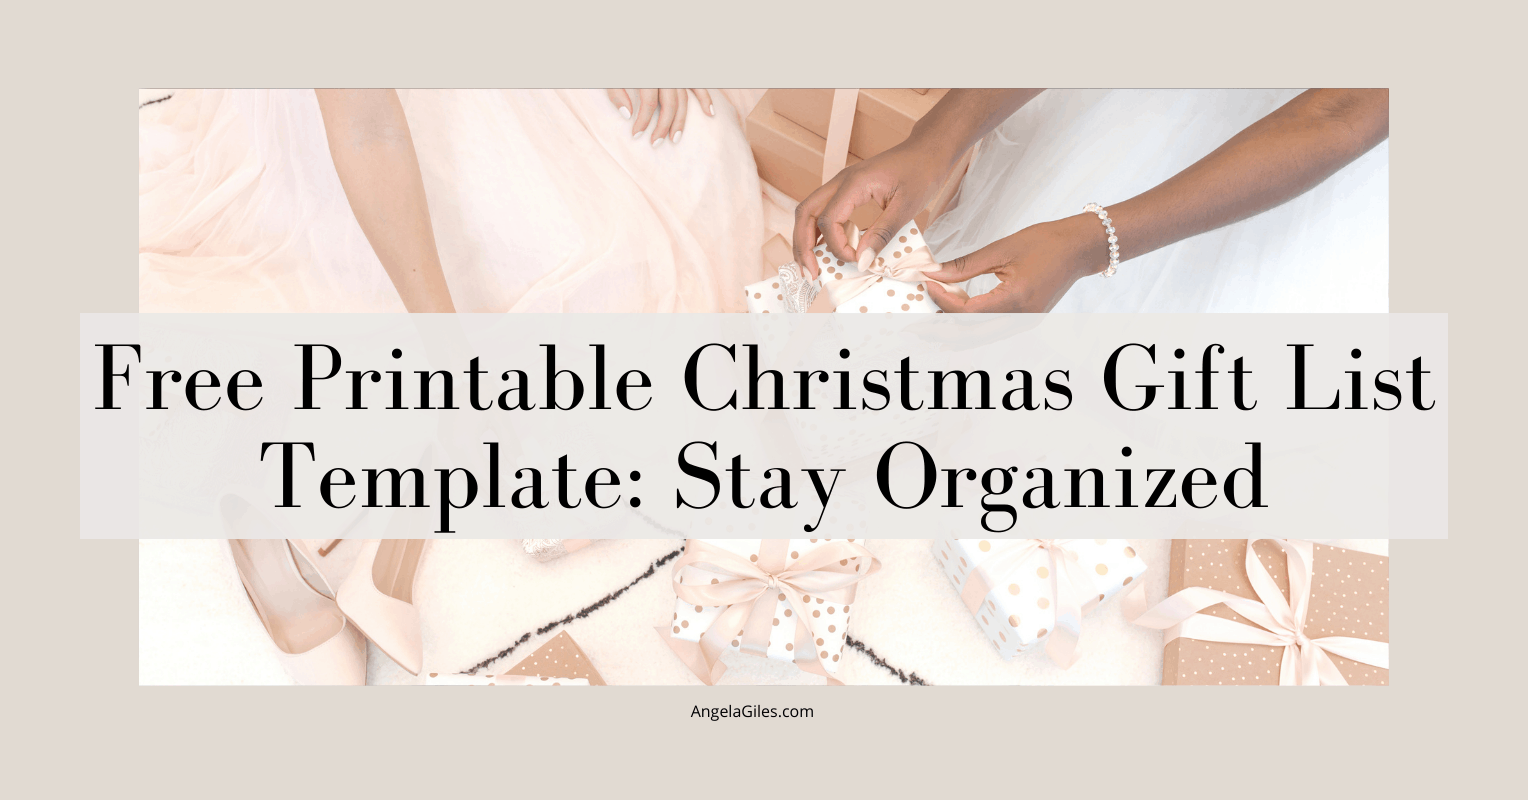 Free Printable Christmas Gift List Template: Stay Organized